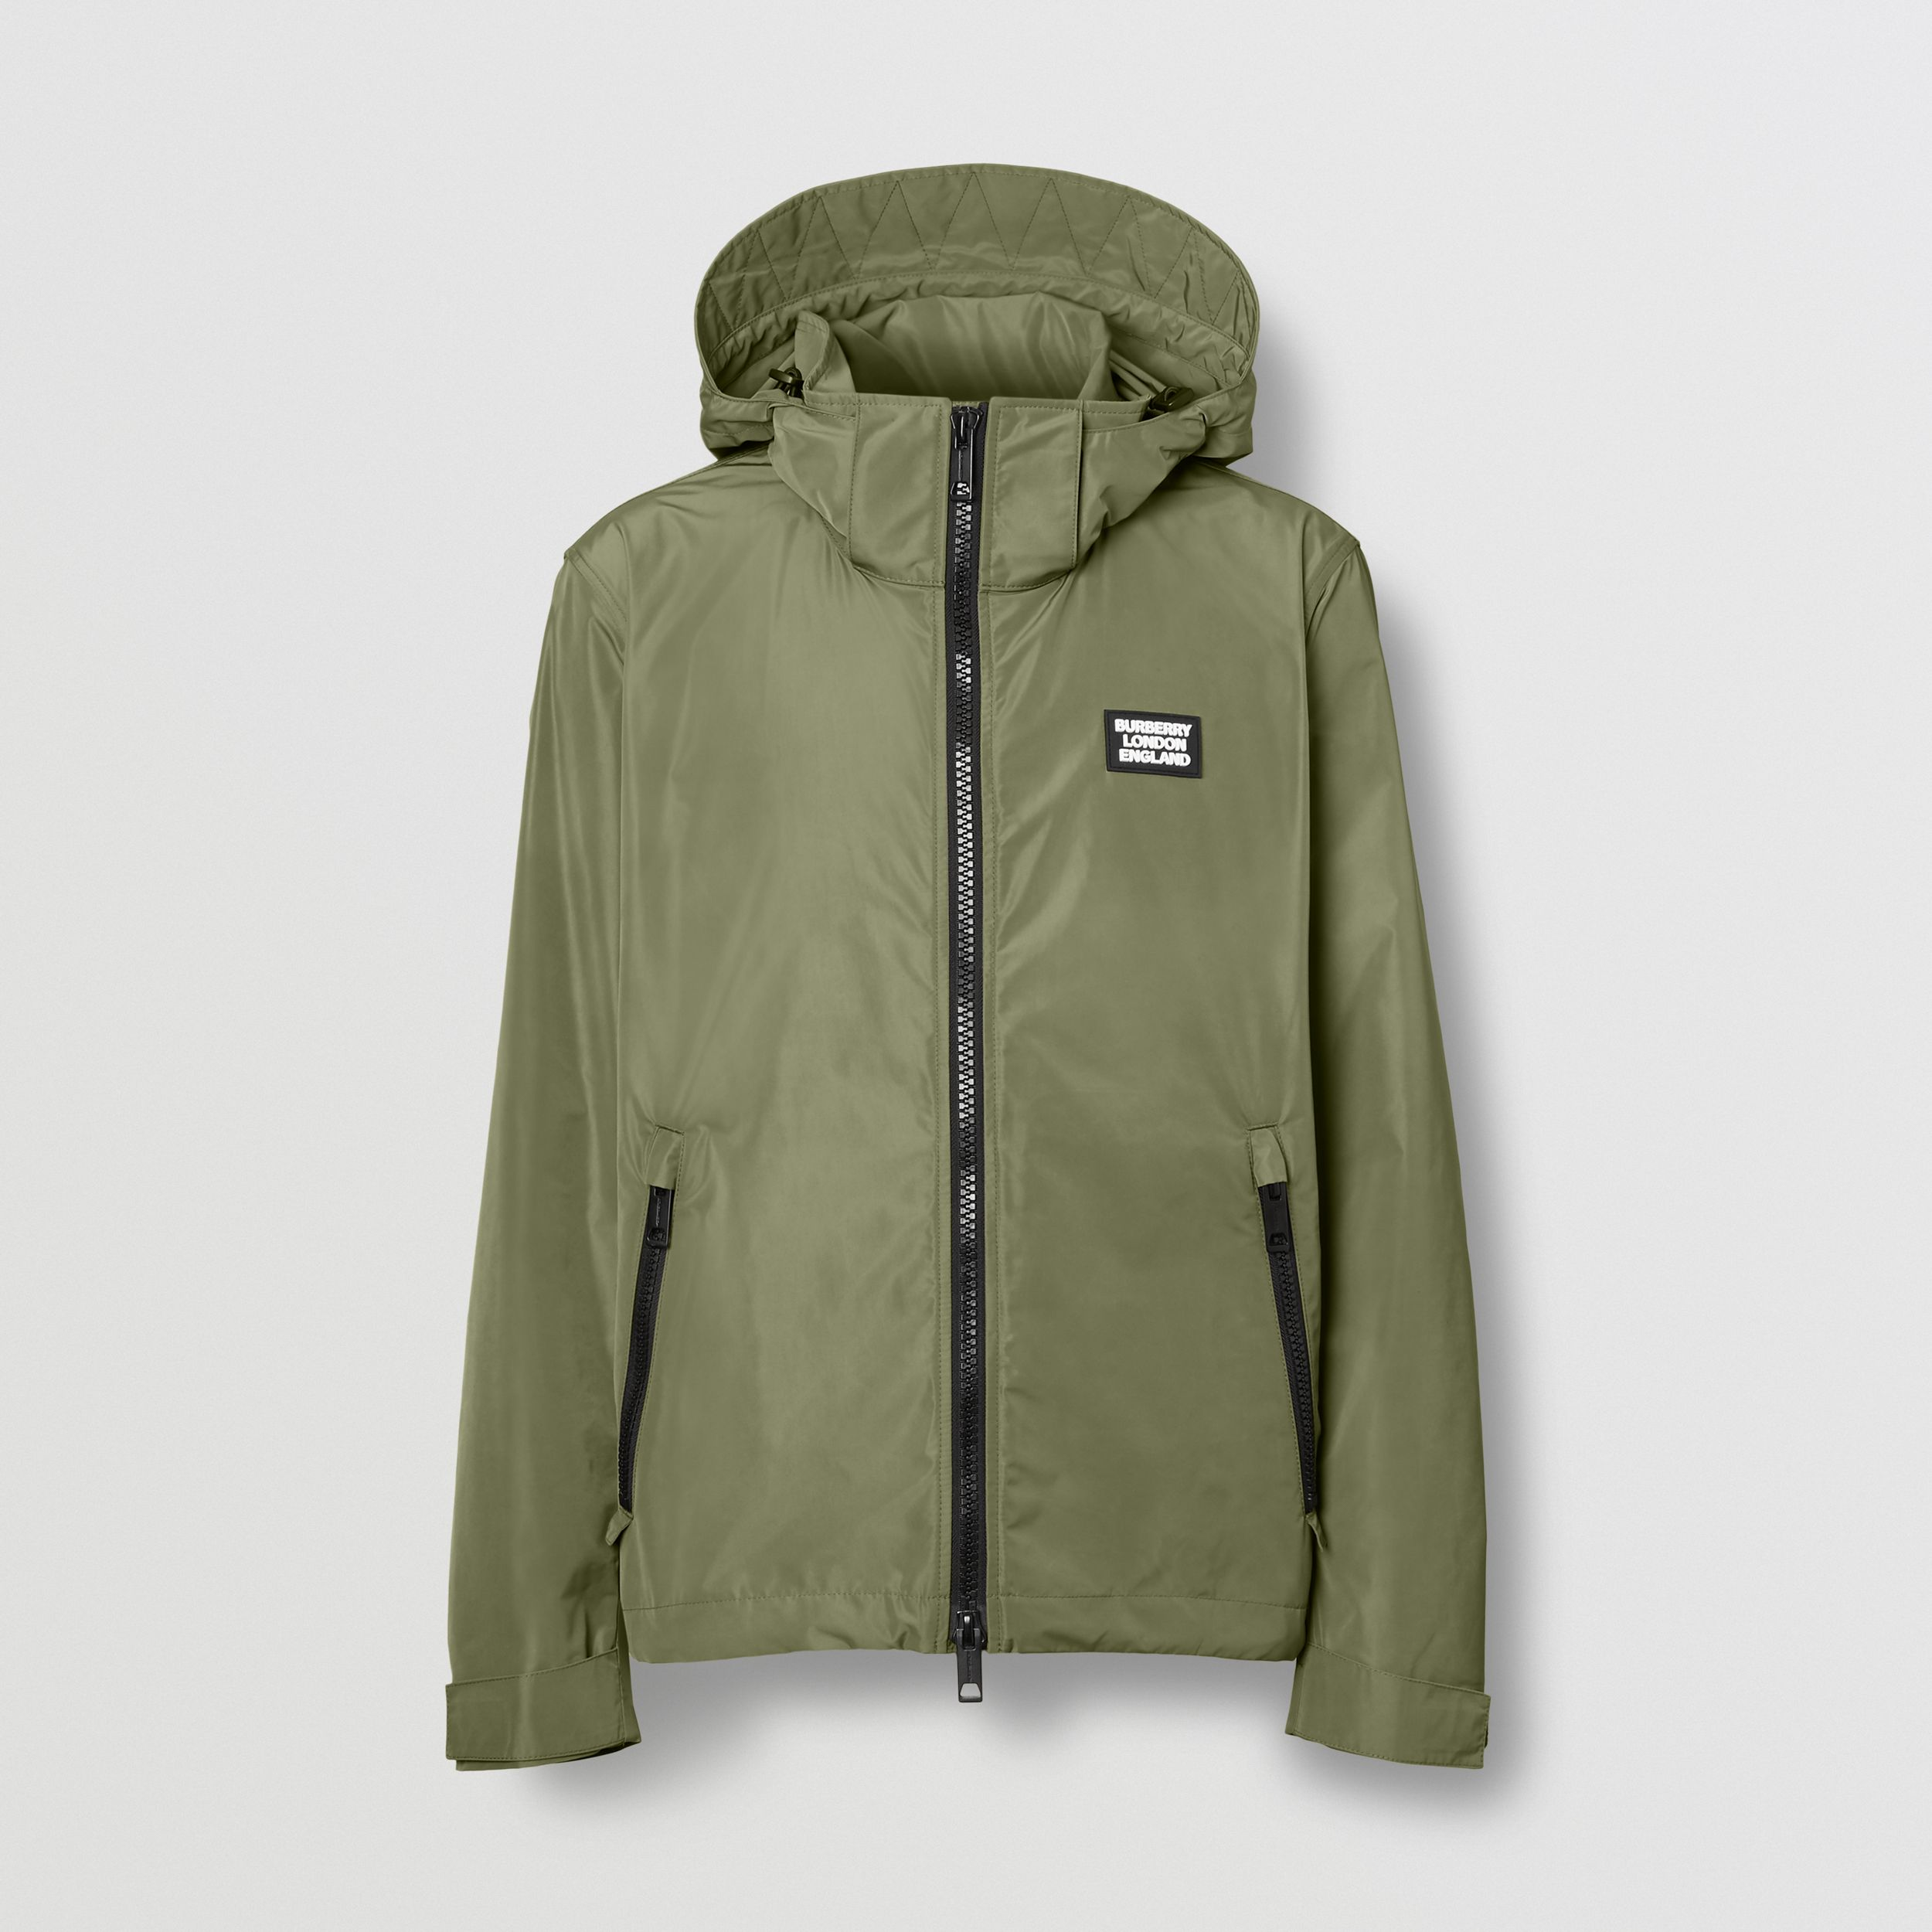 Packaway Hood Shape-memory Taffeta Jacket in Olive - Men | Burberry - 4